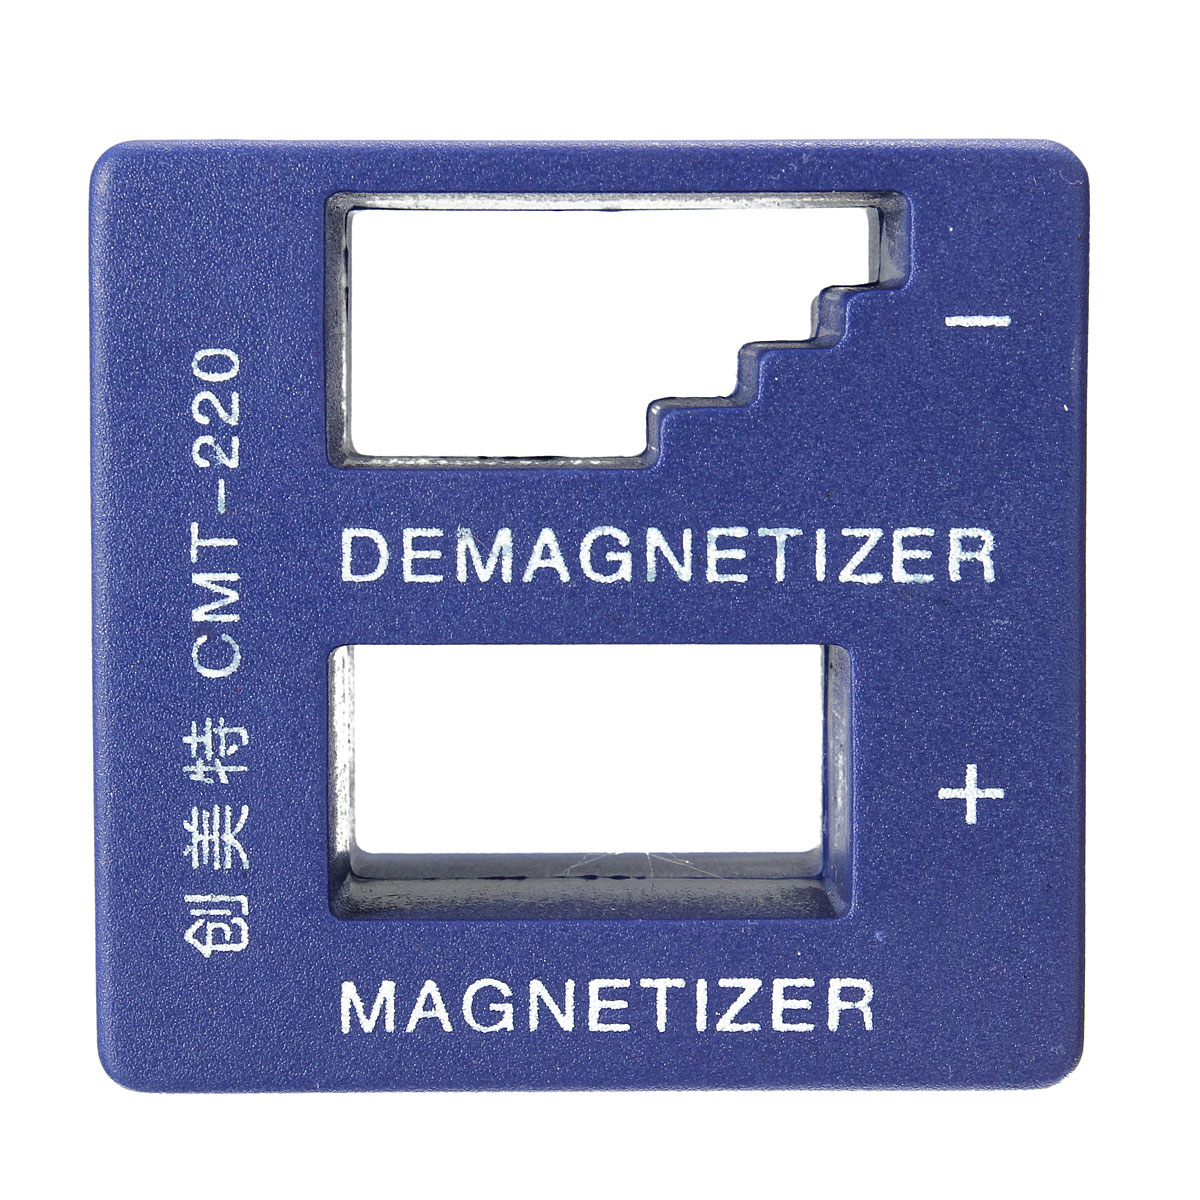 Magnetizer Demagnetizer Box Screwdriver Tips Screw Bits Magnetic Tool